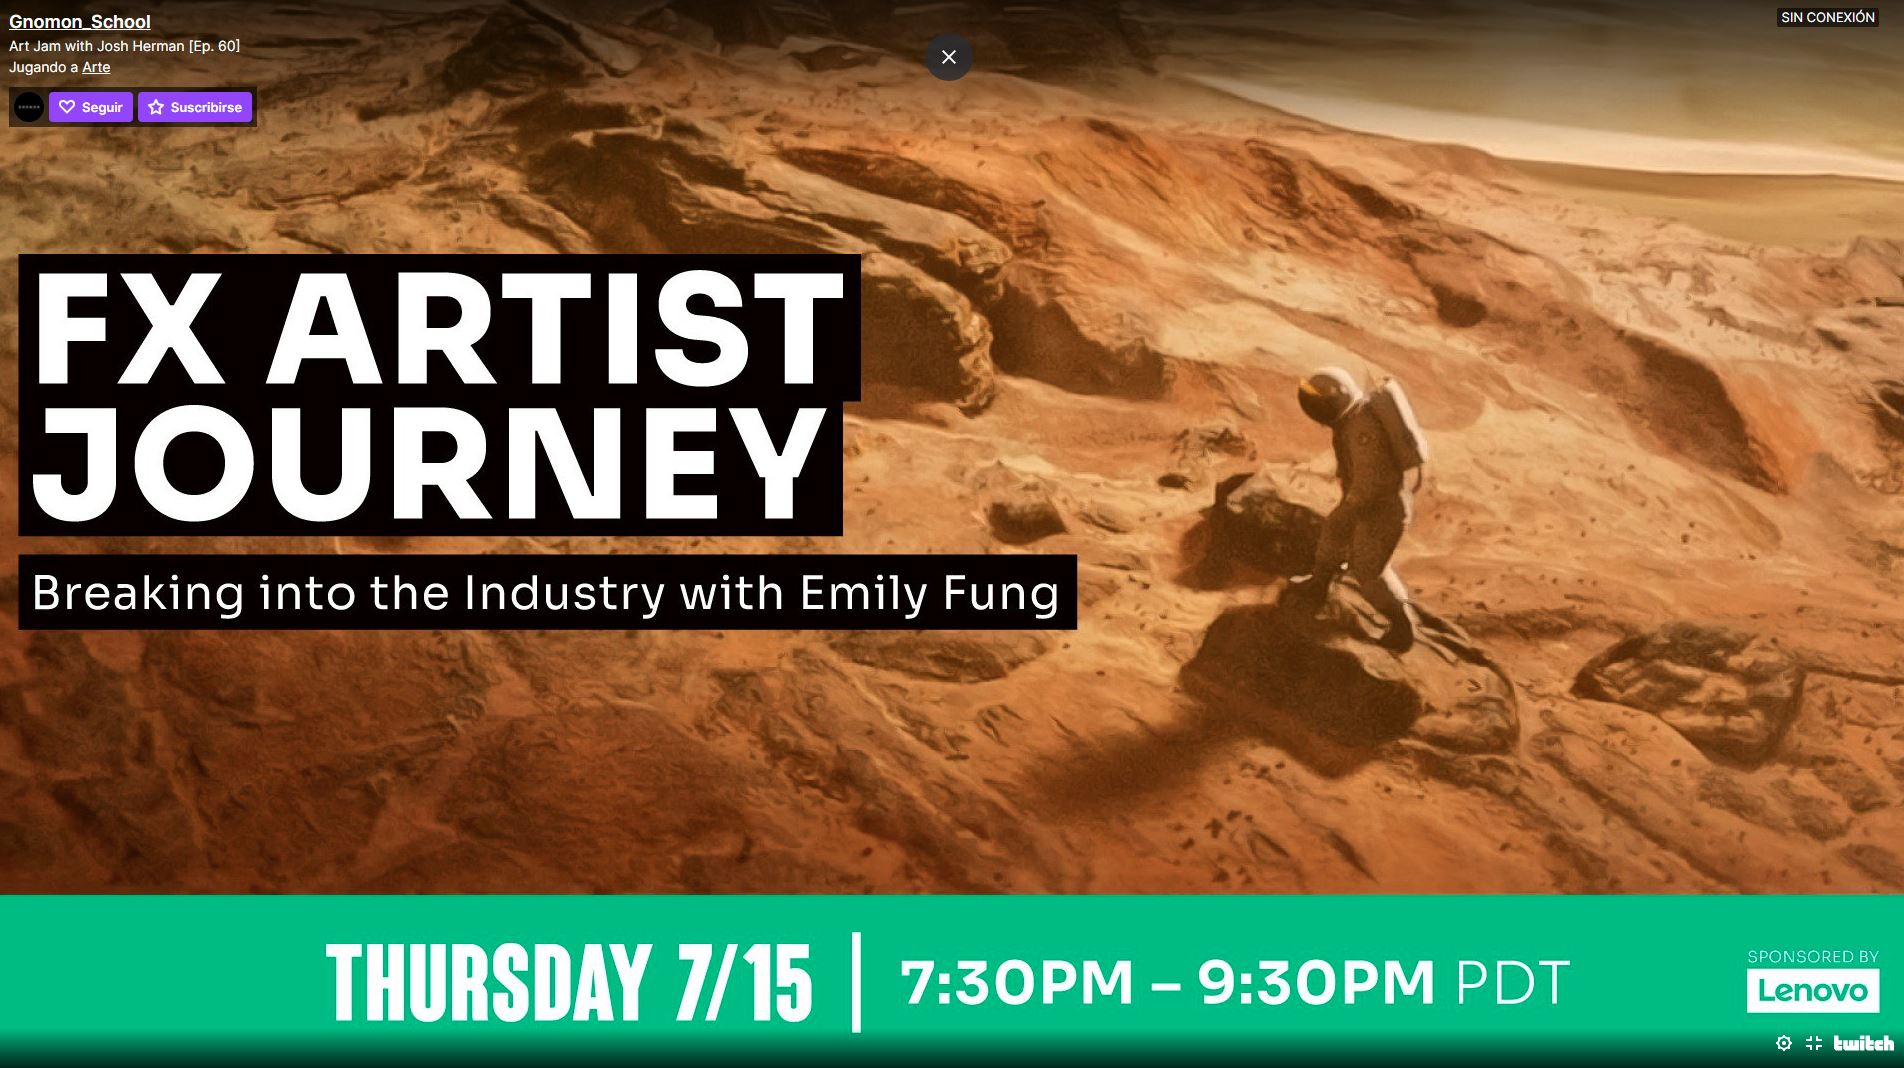 FX Artist journey – Breaking into the industry with Emily Fung Poster